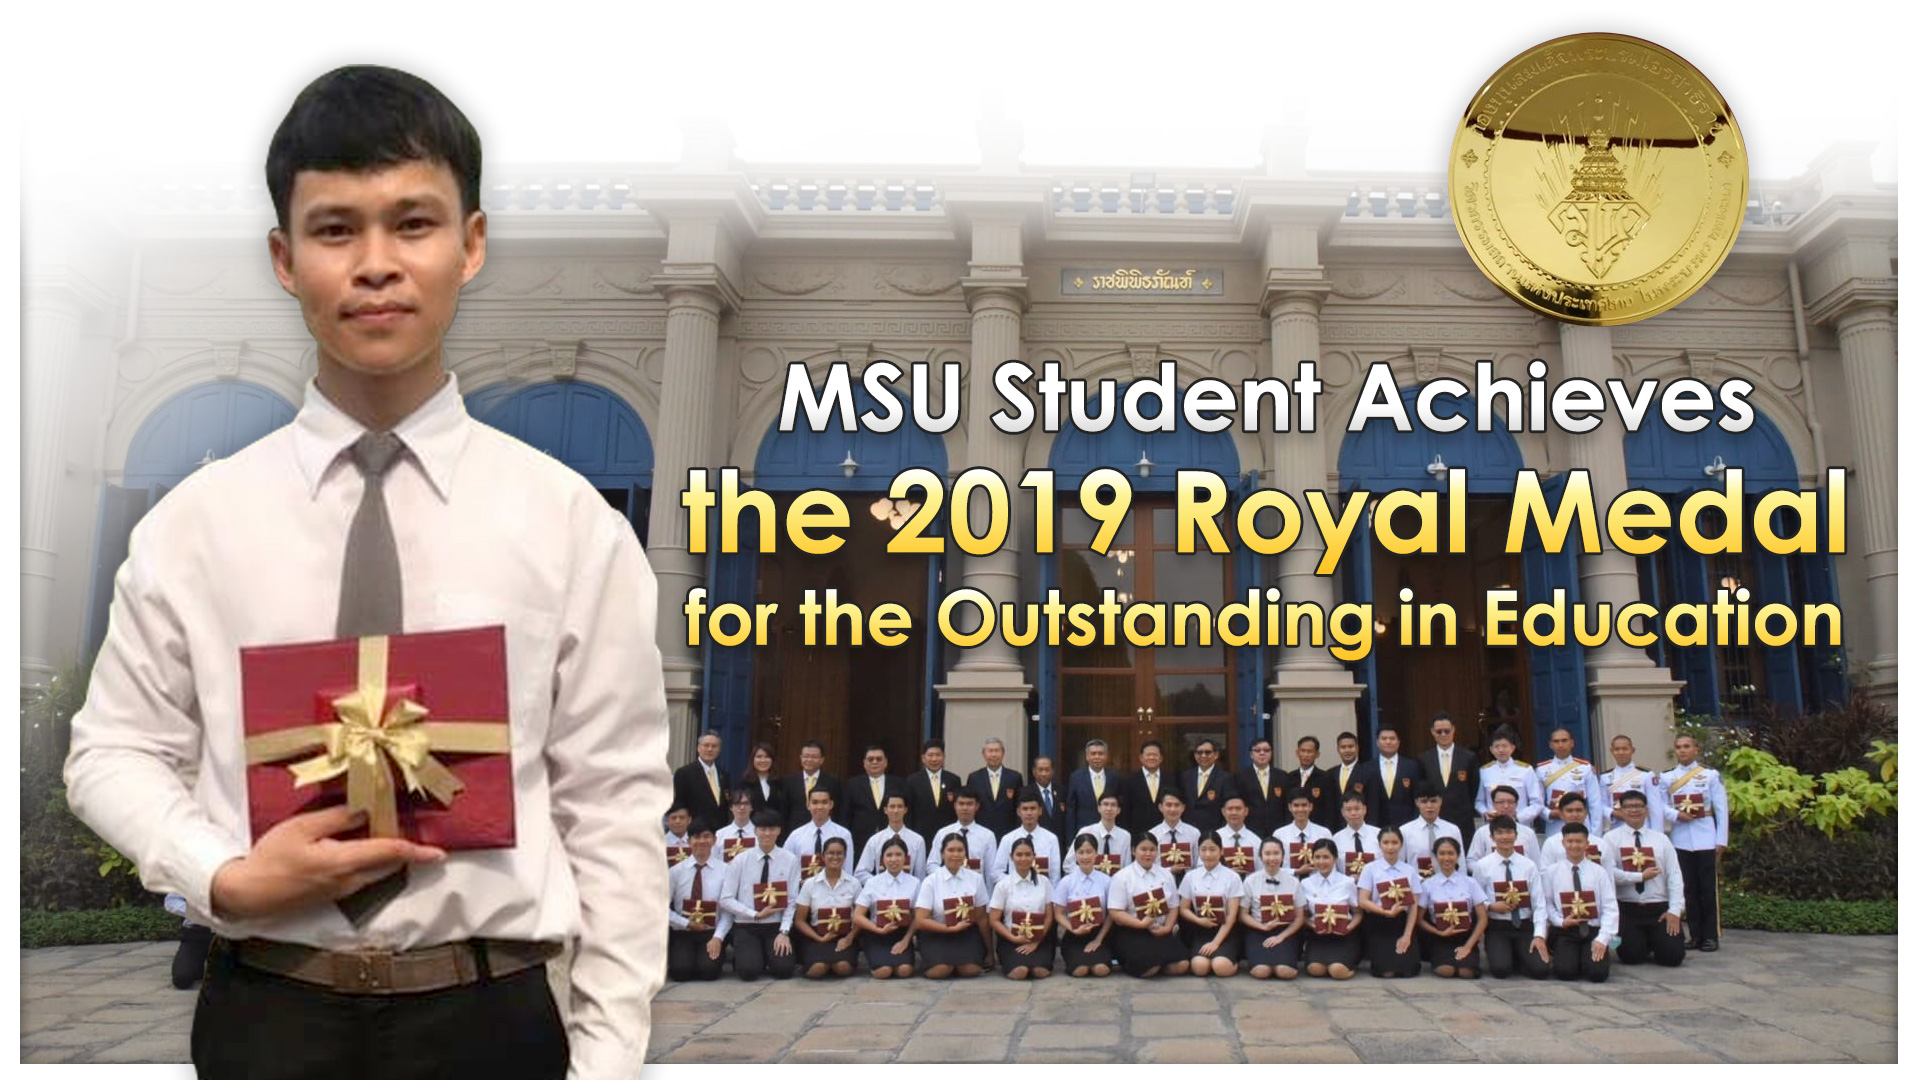 MSU Student Achieves the 2019 Royal Medal for the Outstanding in Education